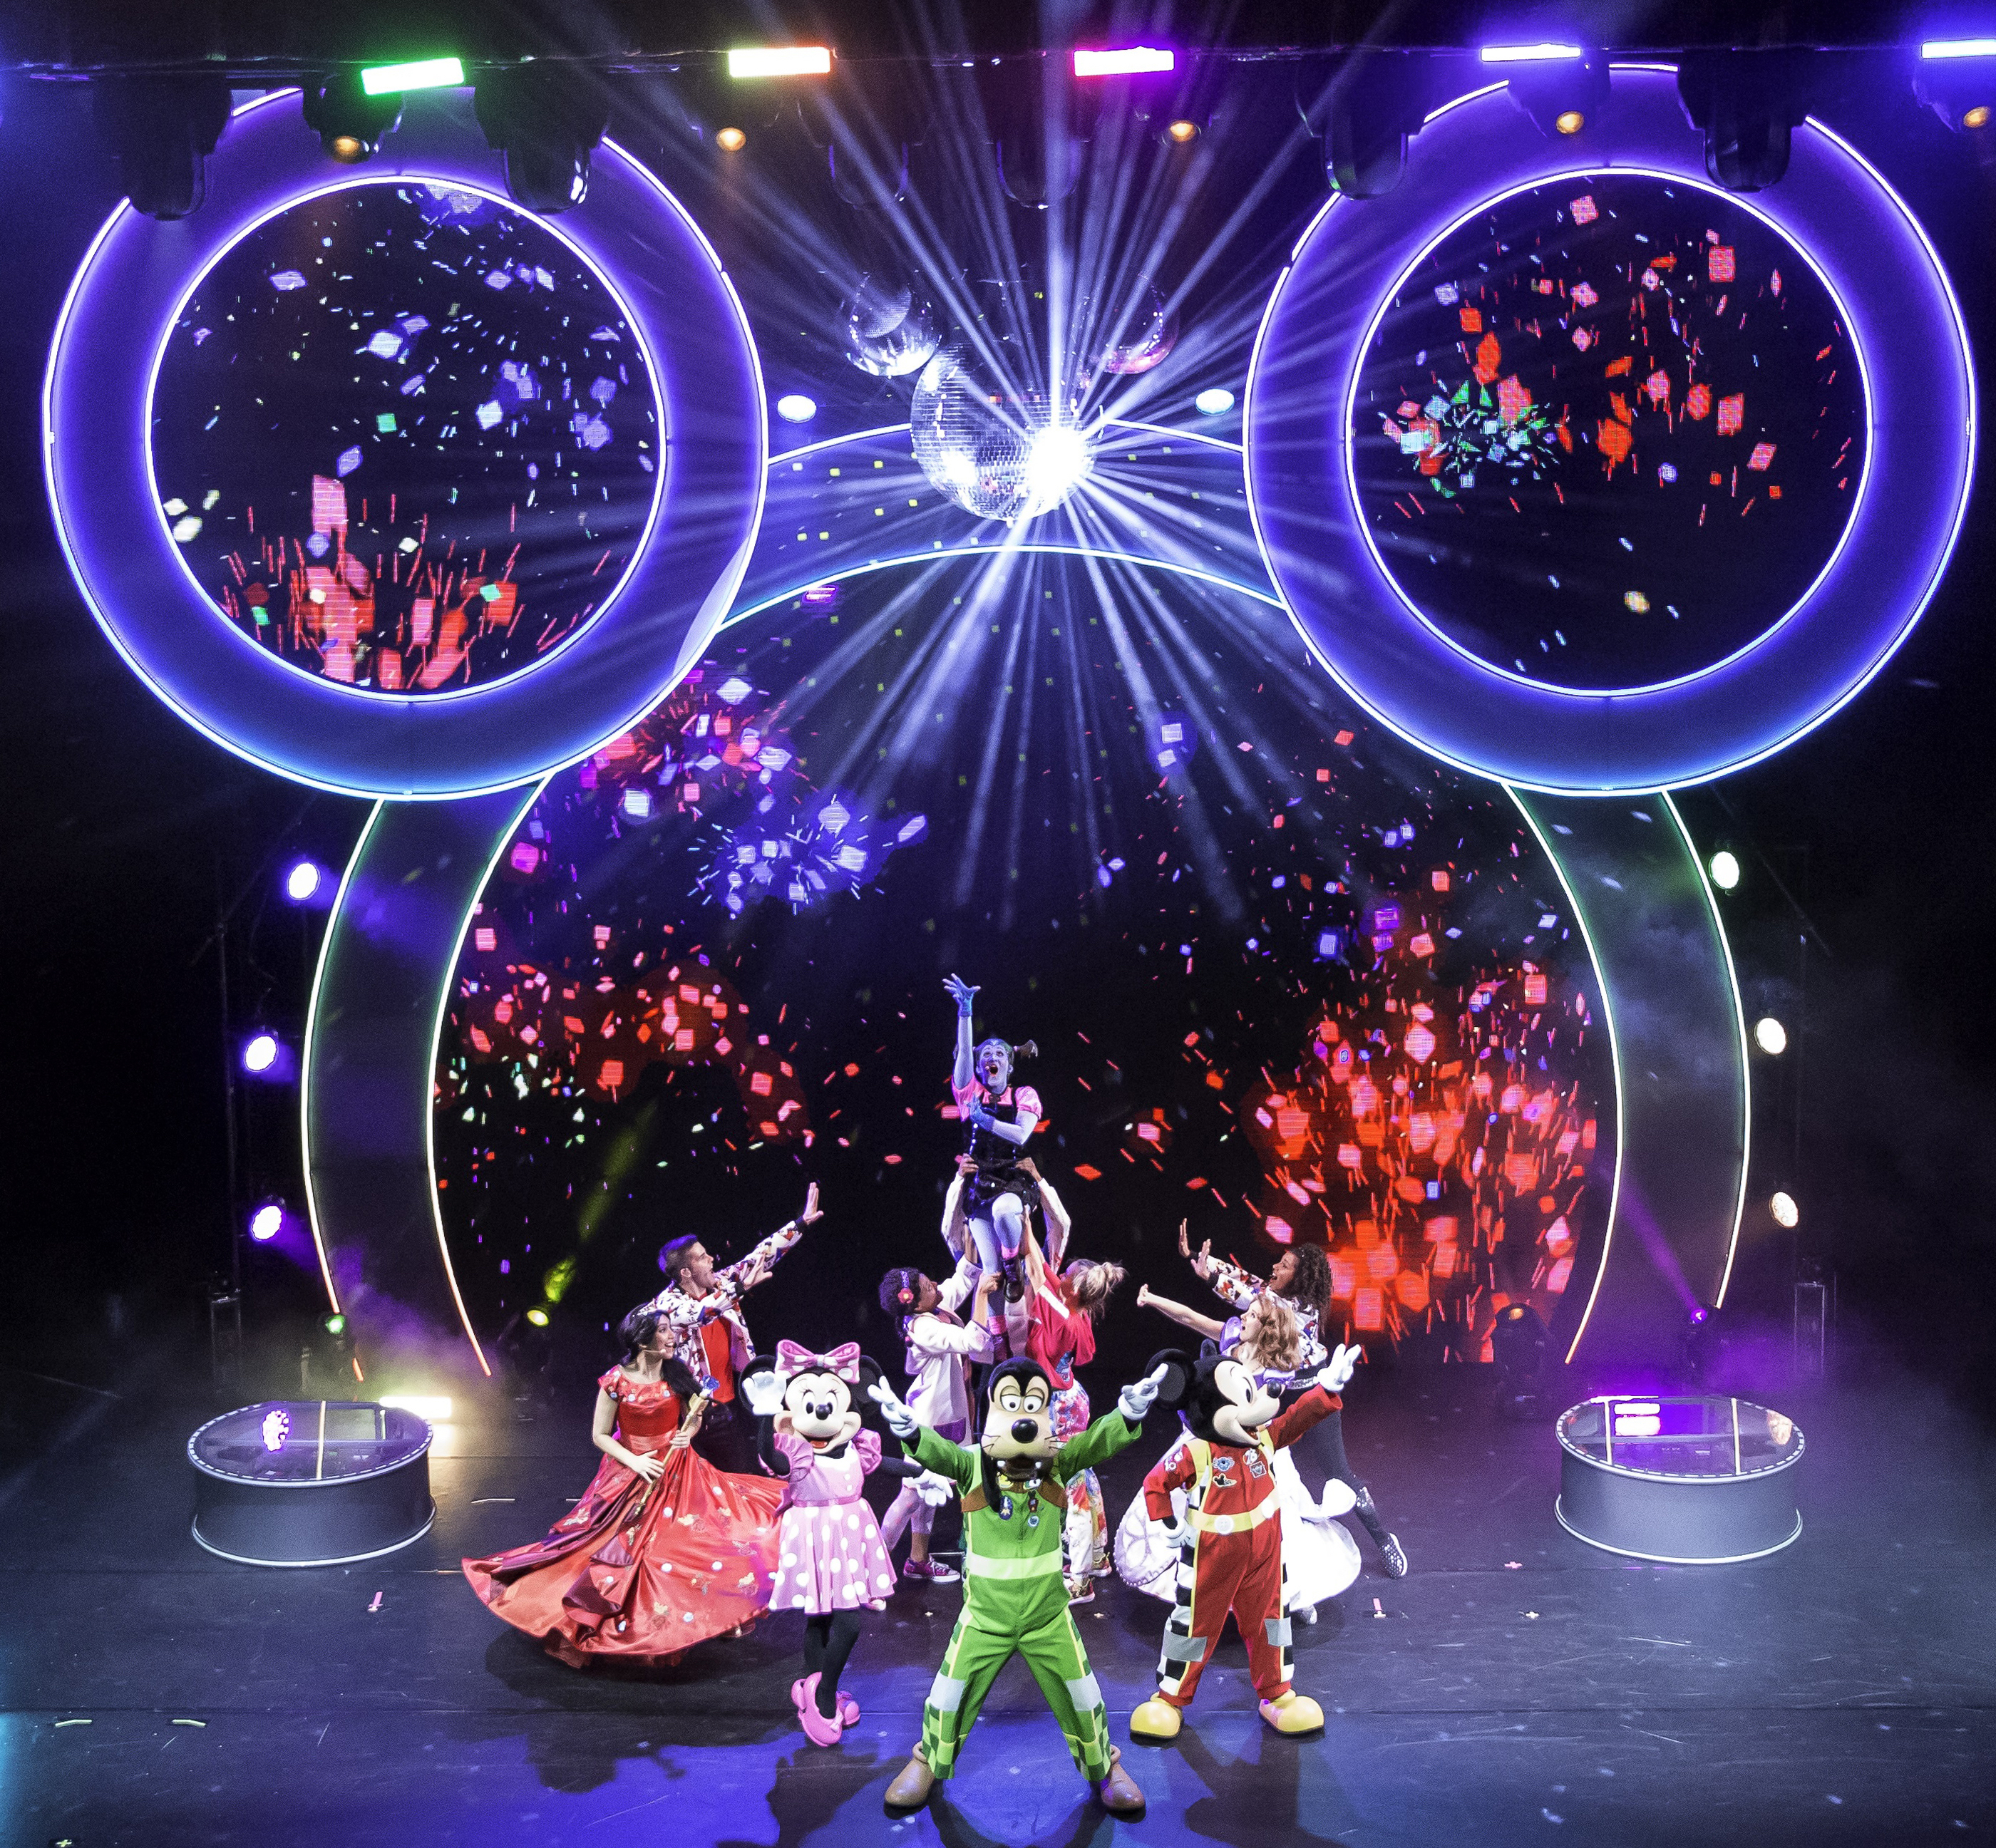 disney junior dance party on tour is traveling the nation with a high energy interactive live show bringing the beloved characters and music from the 1